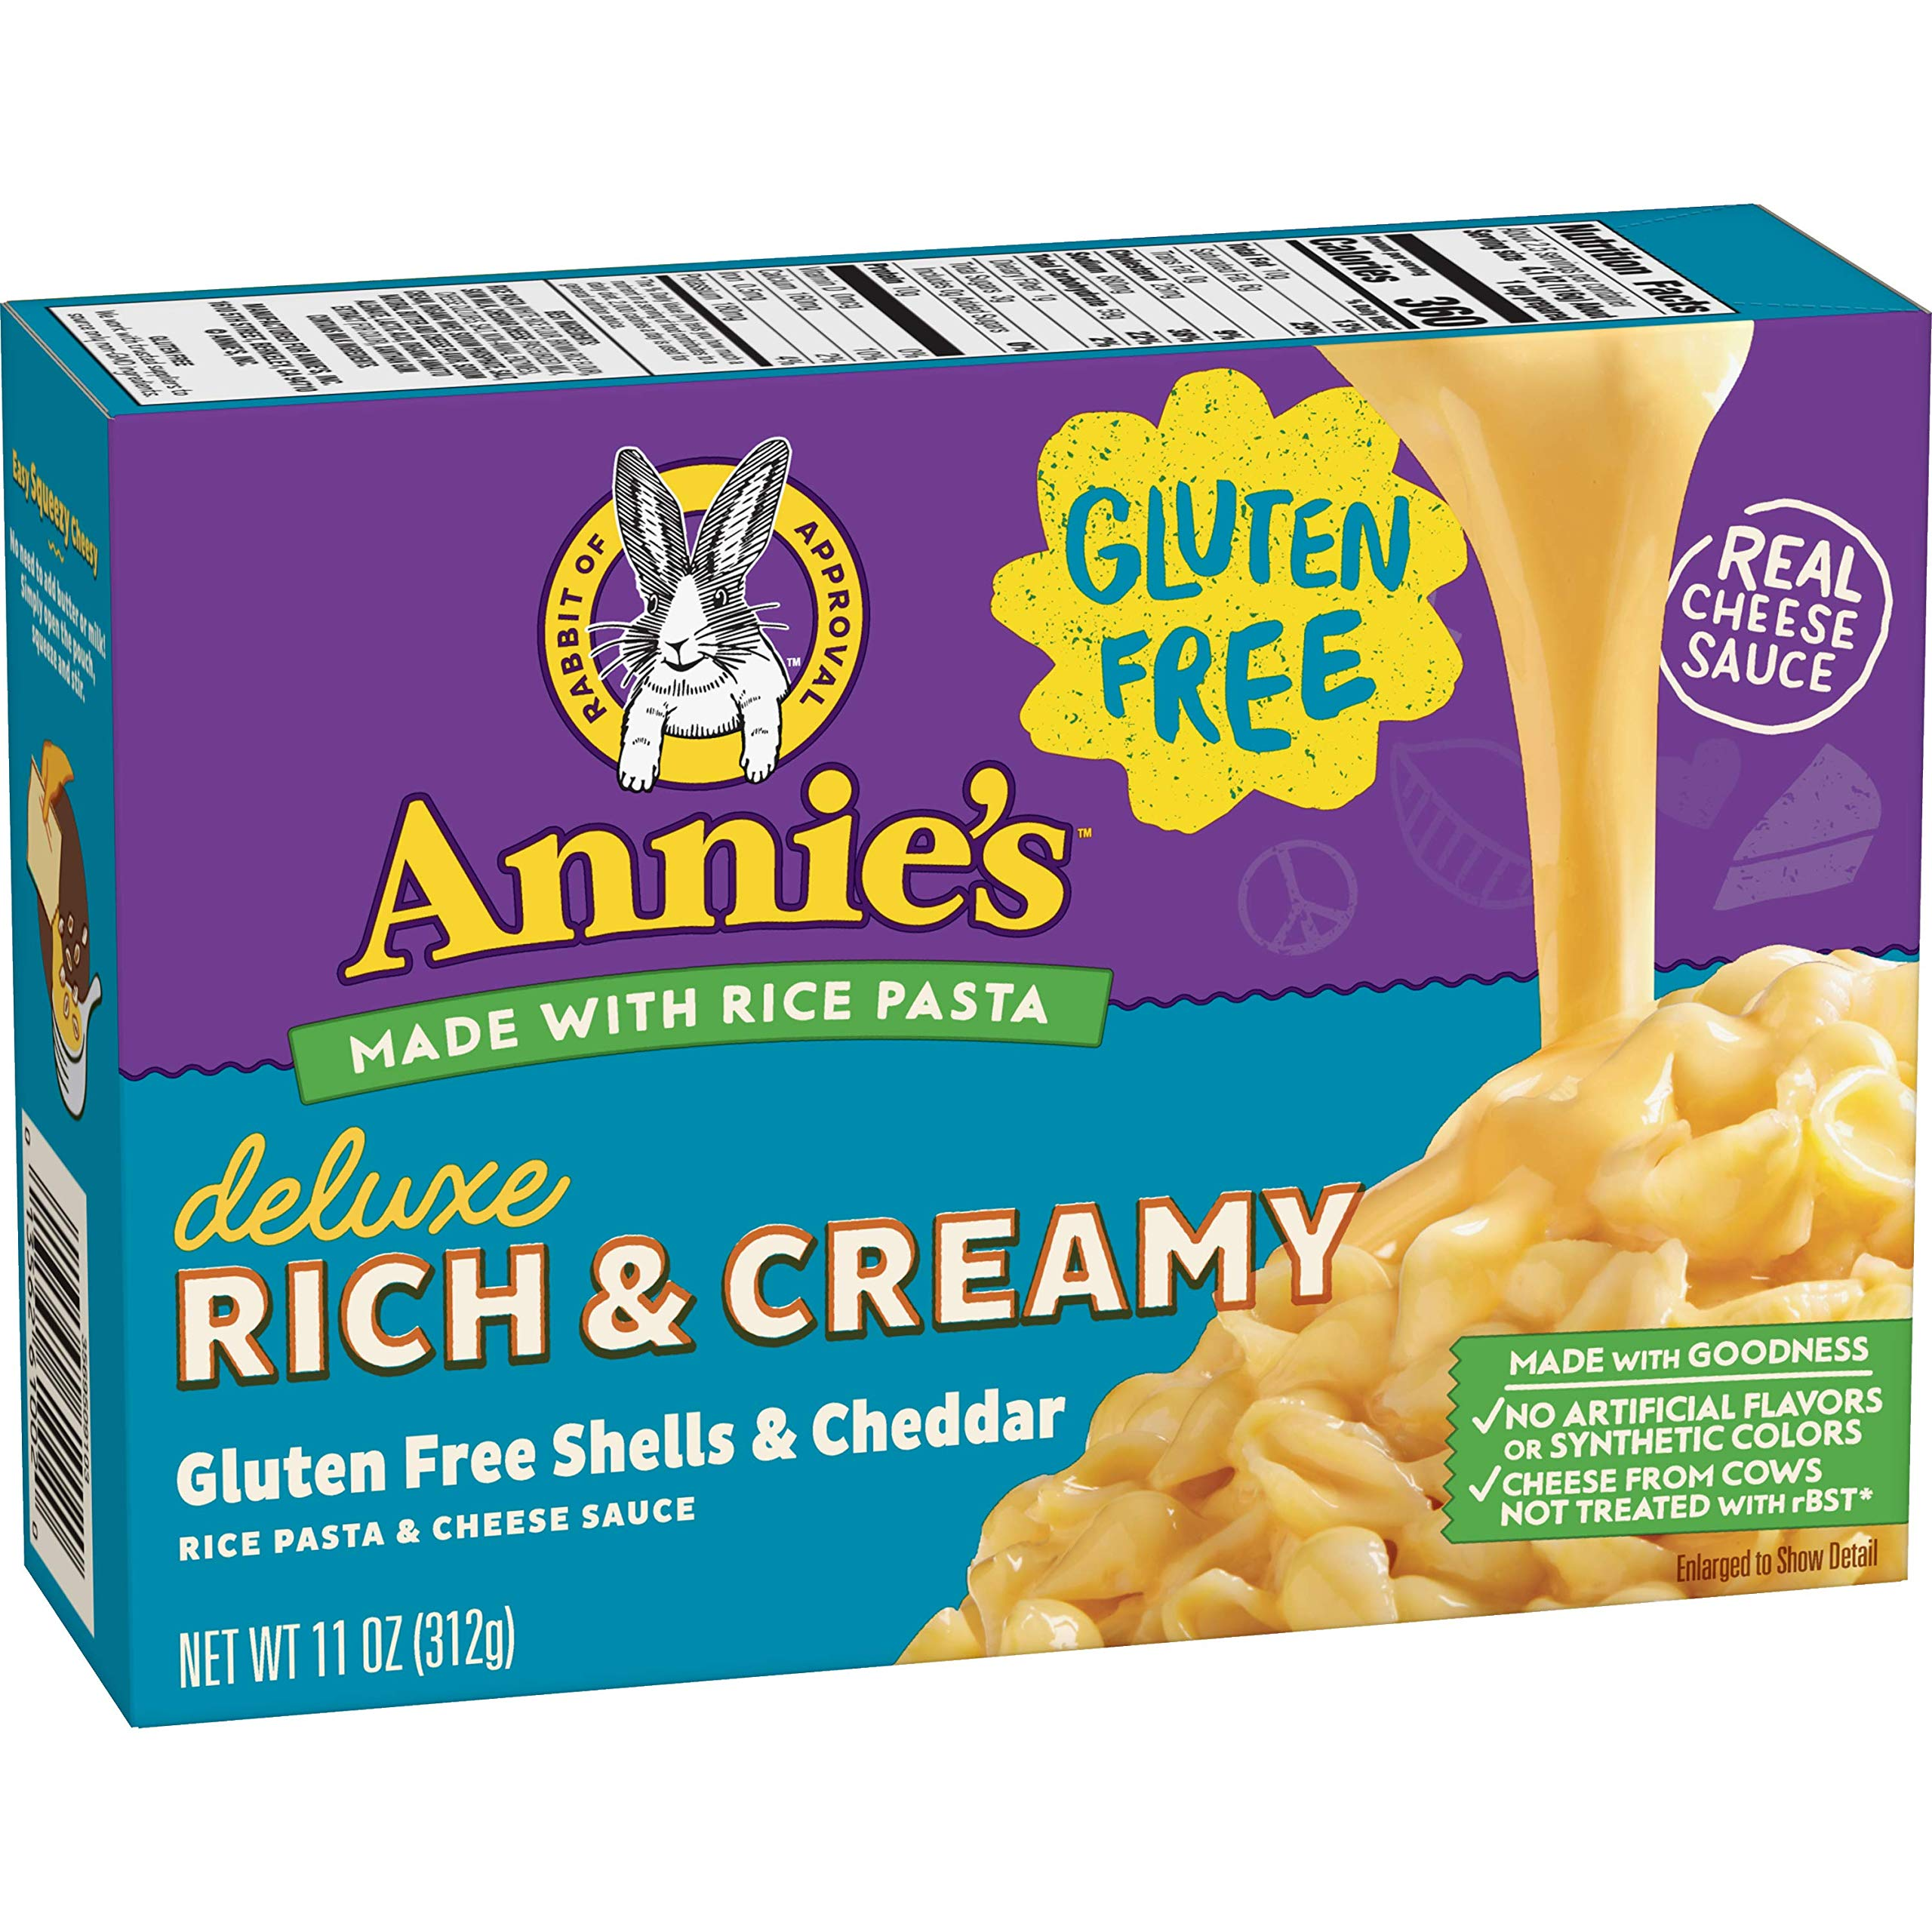 Annie's Gluten Free Macaroni and Cheese, Rice Pasta & Extra Cheesy Cheddar Sauce Mac and Cheese, 11 oz Box (Pack of 6) by Annie's Homegrown